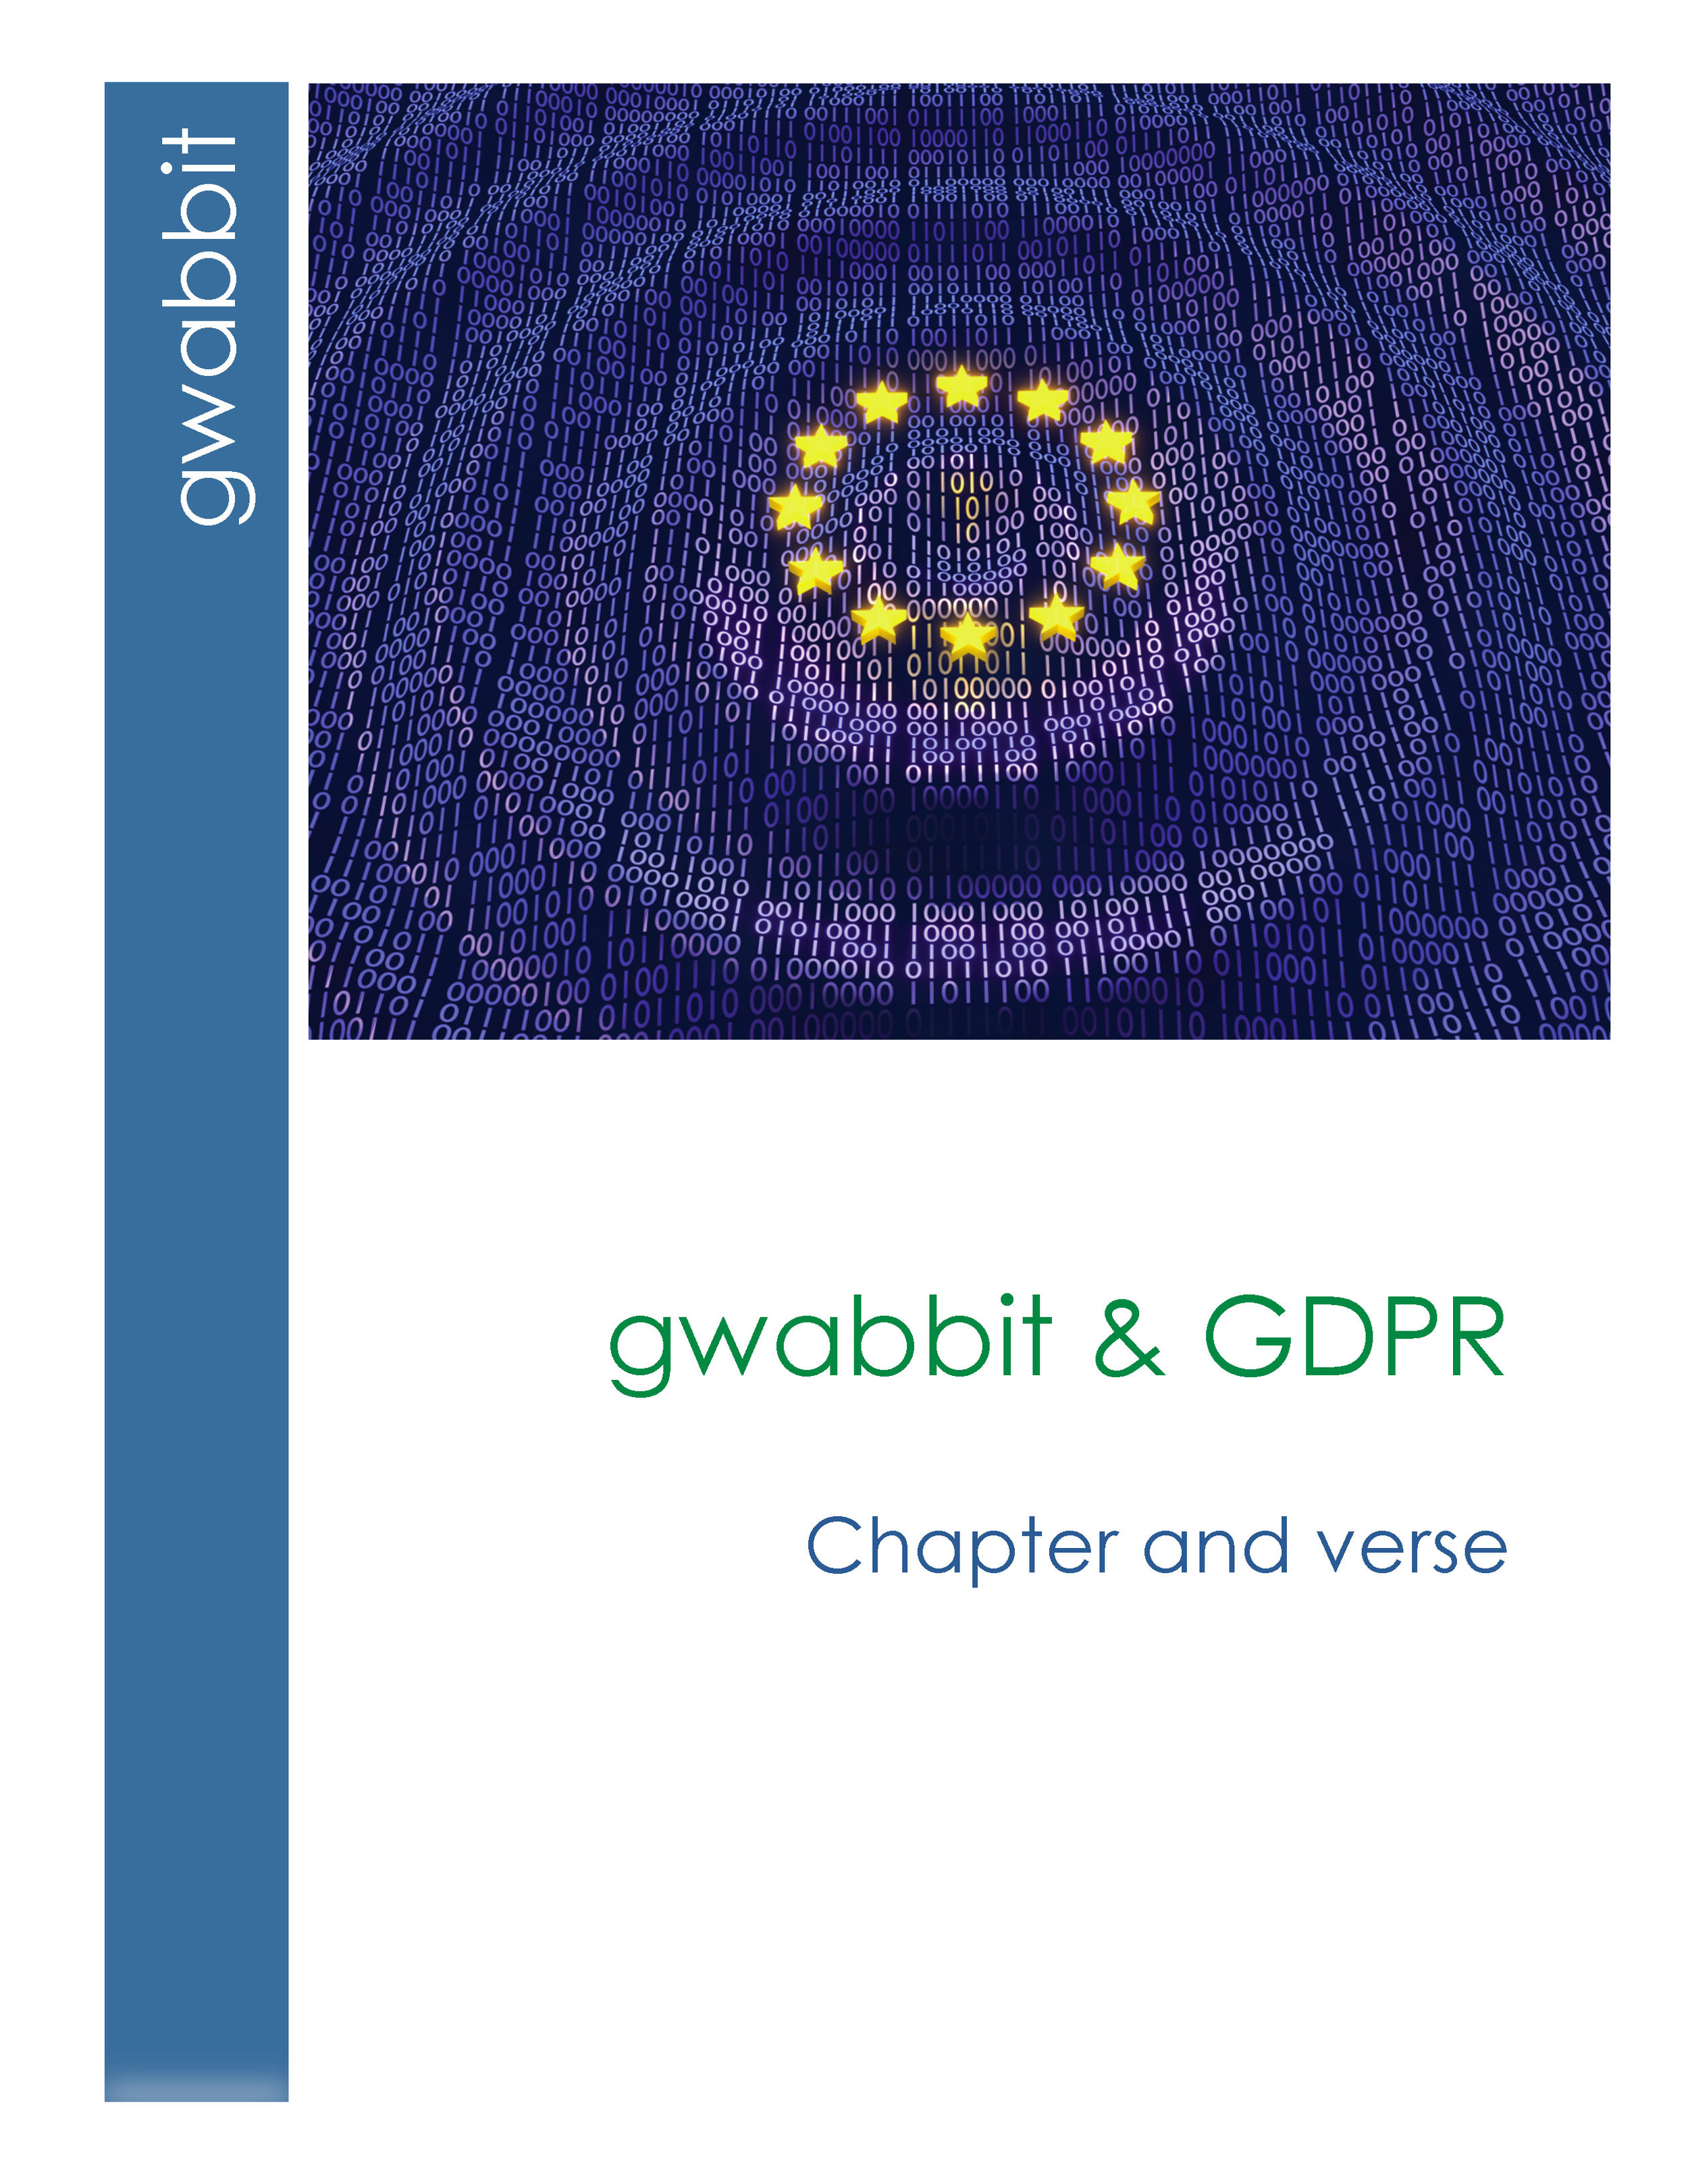 There's no shortage of confusion in the industry regarding GDPR. The purpose of this document is to provide clear information regarding the role gwabbit plays in GDPR compliance, both in data capture and data retention policies. This document also illustrates the issues associated with traditional address book-sourced CRM models as a result of GDPR.